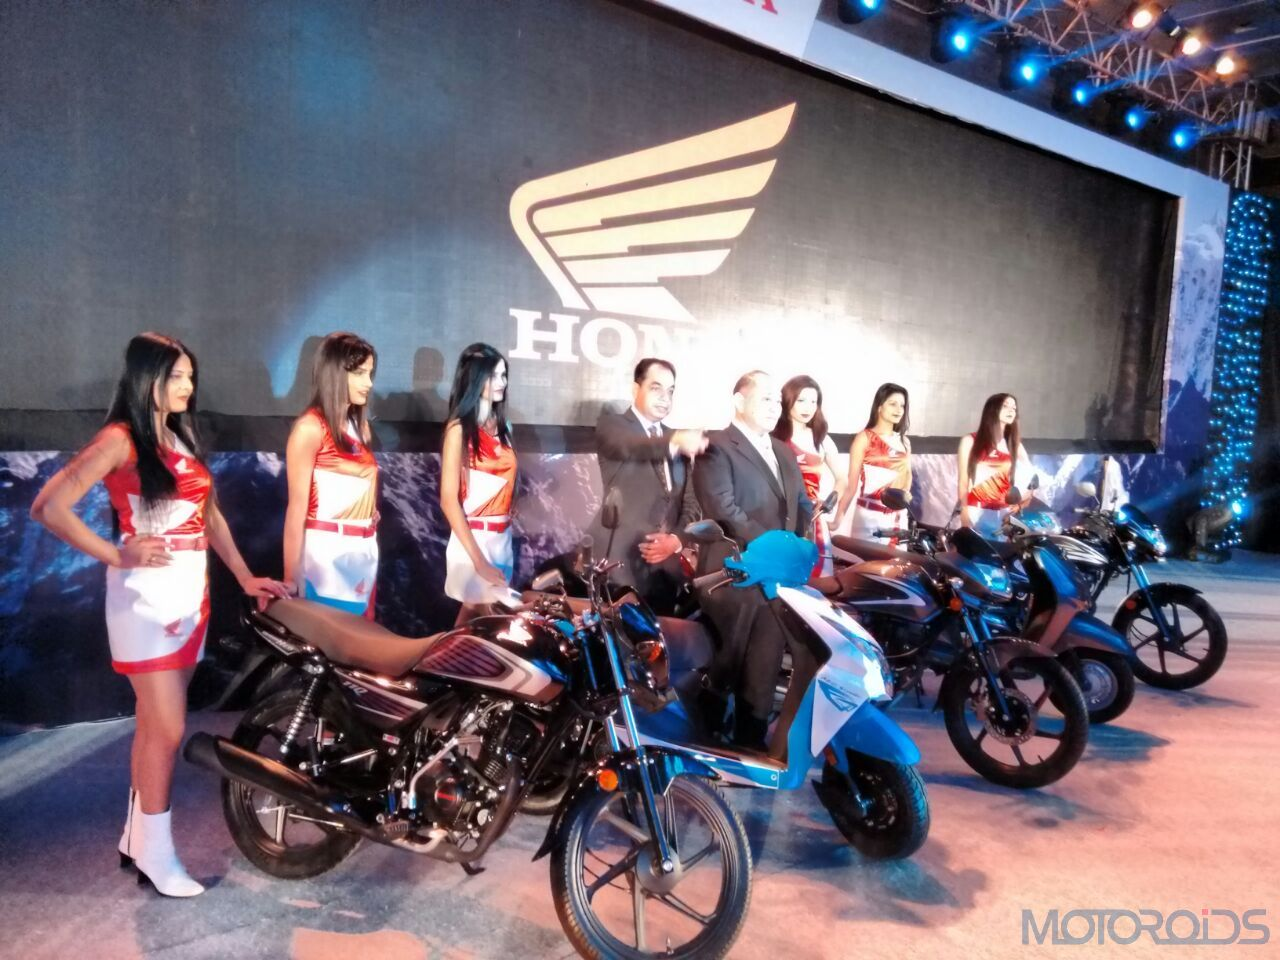 Live Honda Motorcycles And Scooters India Mega Unveiling Activa 3g Motor More Motoroids